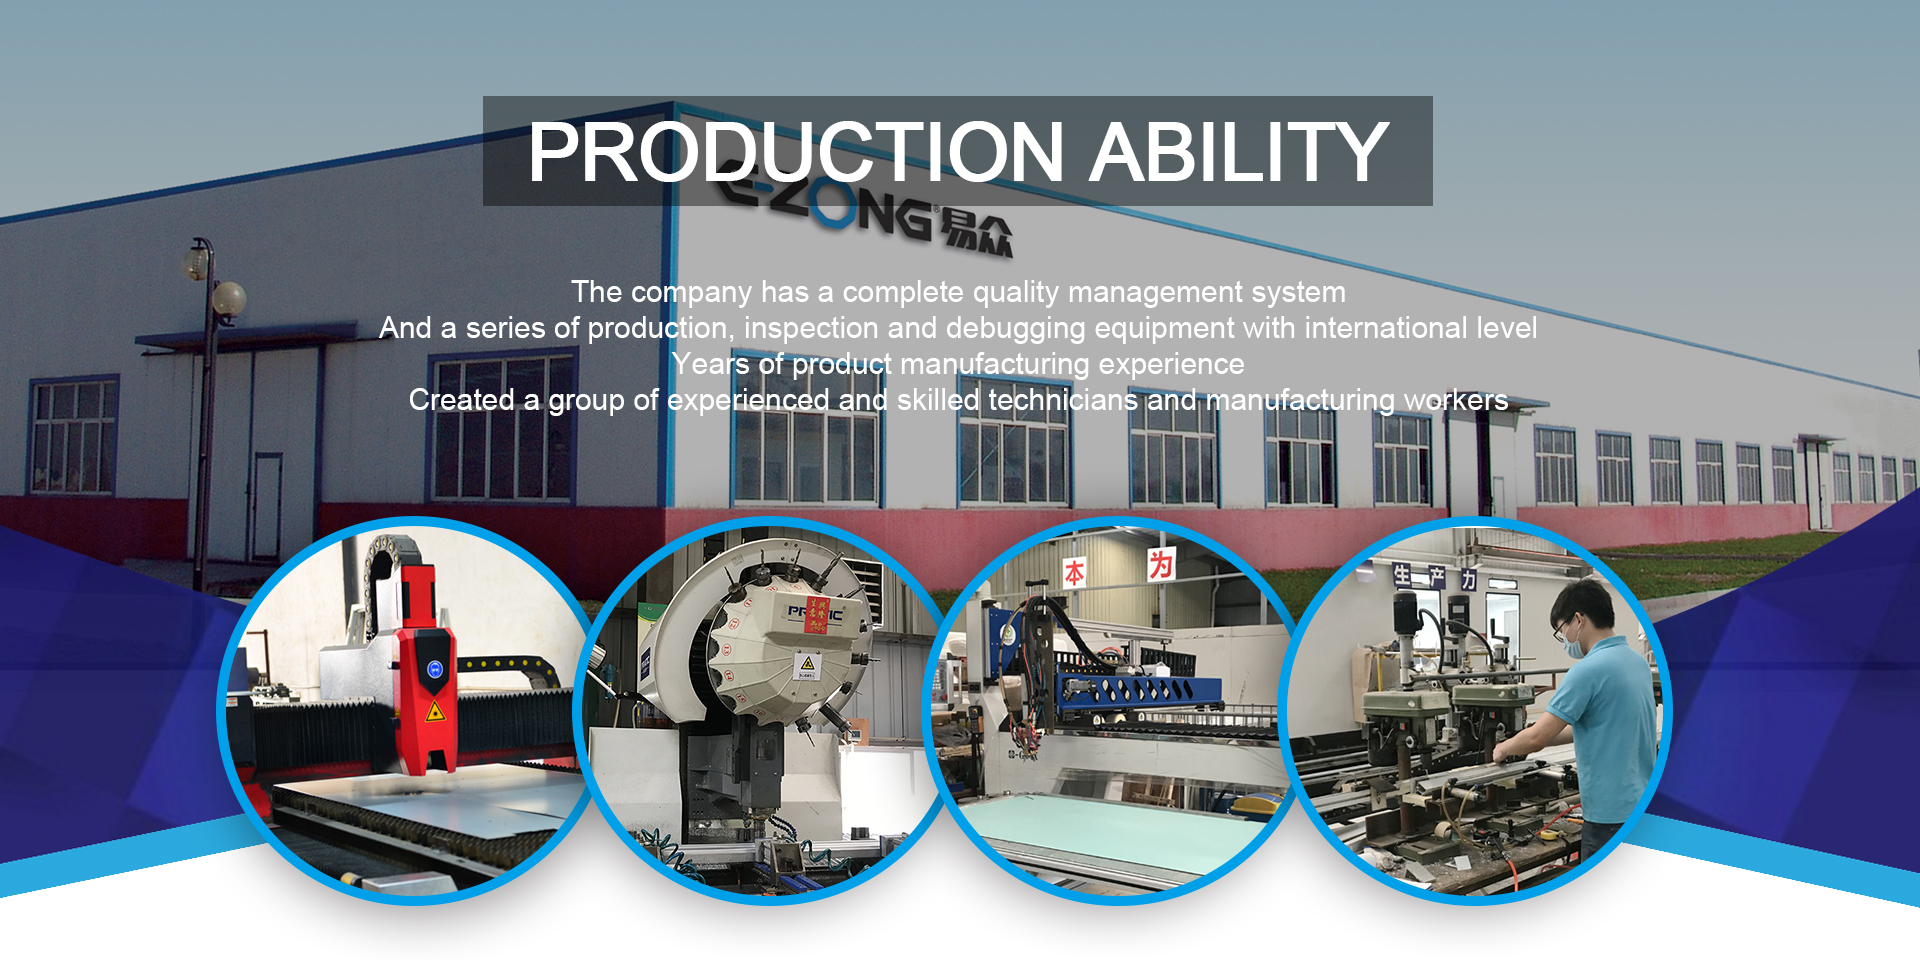 Production Ability